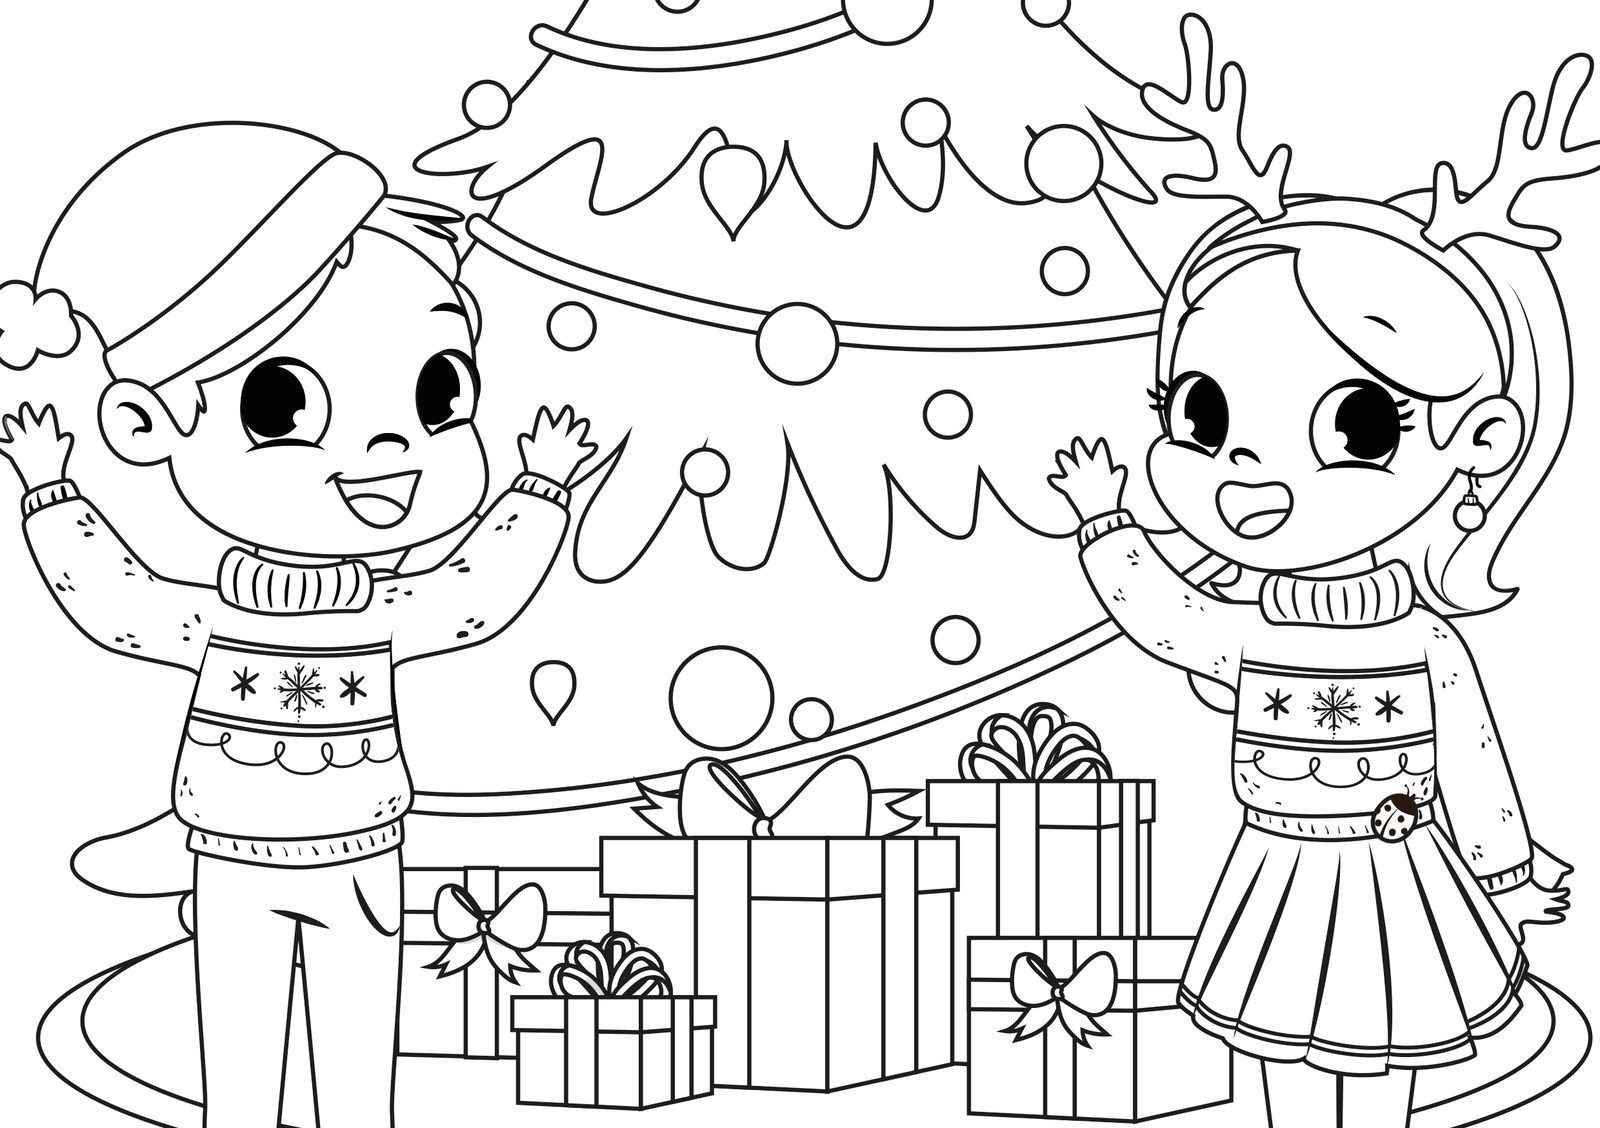 EuroParcs coloring pictures Christmas